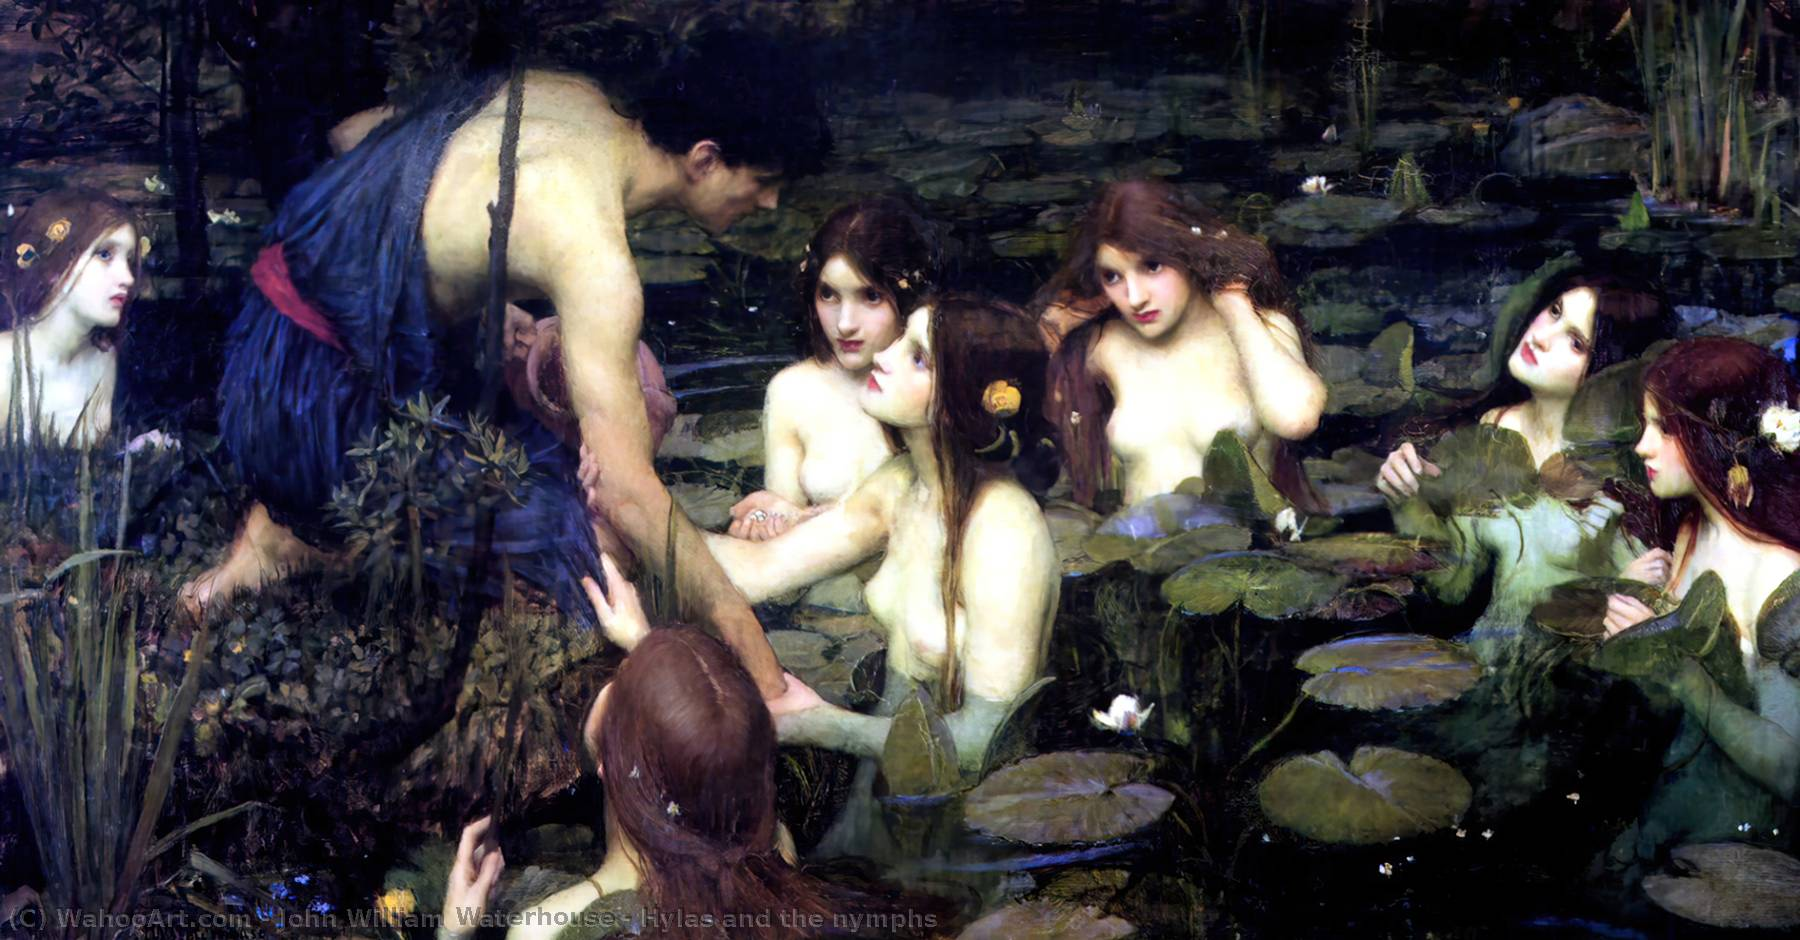 Hylas and the nymphs, Oil by John William Waterhouse (1849-1917, Italy)